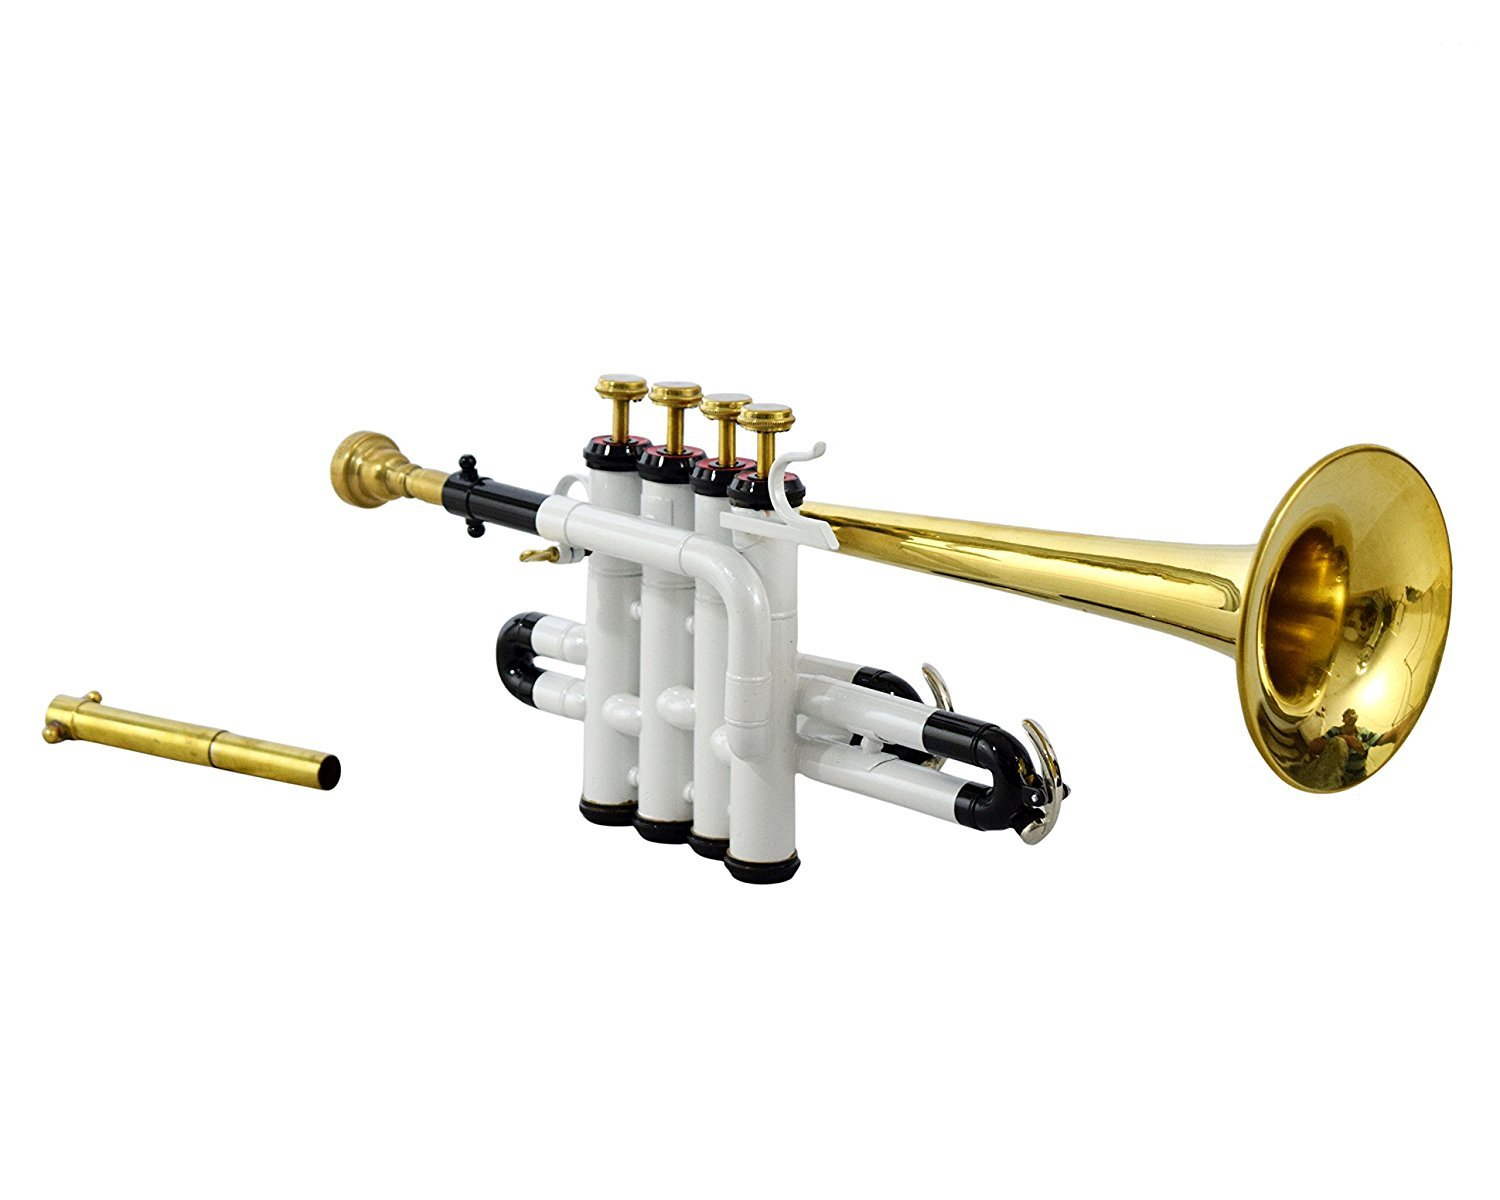 Picollo Trumpet Bb Pitch With Free Hard Case And Mouthpiece, White Color + Brass